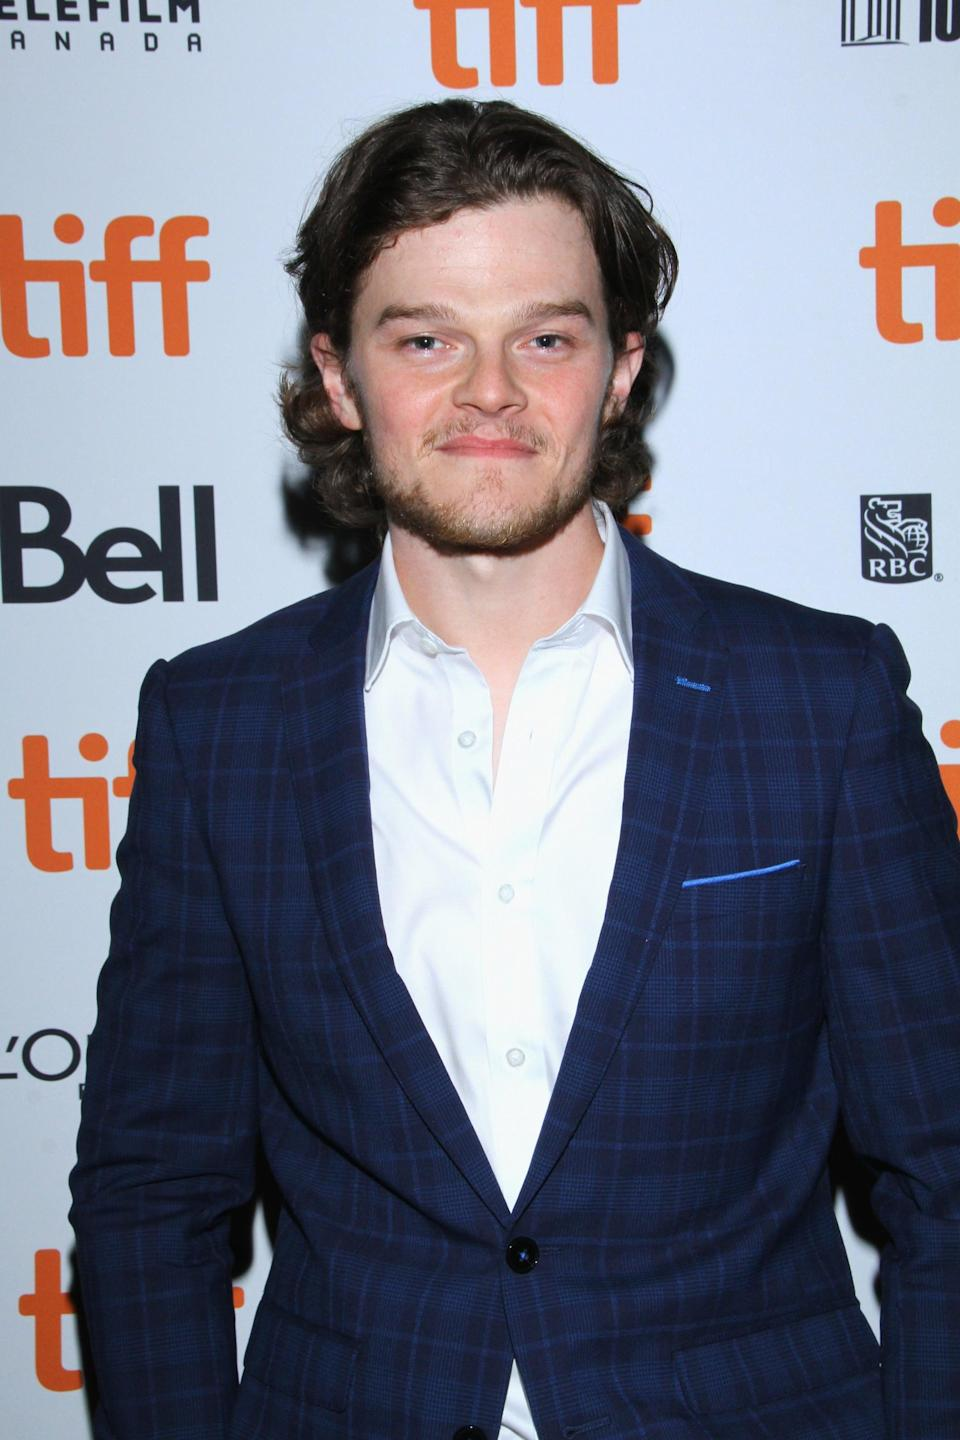 """<p>The <strong>Game of Thrones</strong> alum will star as Beldor, after <a href=""""http://ew.com/tv/2020/01/07/lord-of-the-rings-game-of-thrones-robert-aramayo/"""" class=""""link rapid-noclick-resp"""" rel=""""nofollow noopener"""" target=""""_blank"""" data-ylk=""""slk:Will Poulter dropped out of the series due to scheduling conflicts"""">Will Poulter dropped out of the series due to scheduling conflicts</a>.<br></p>"""